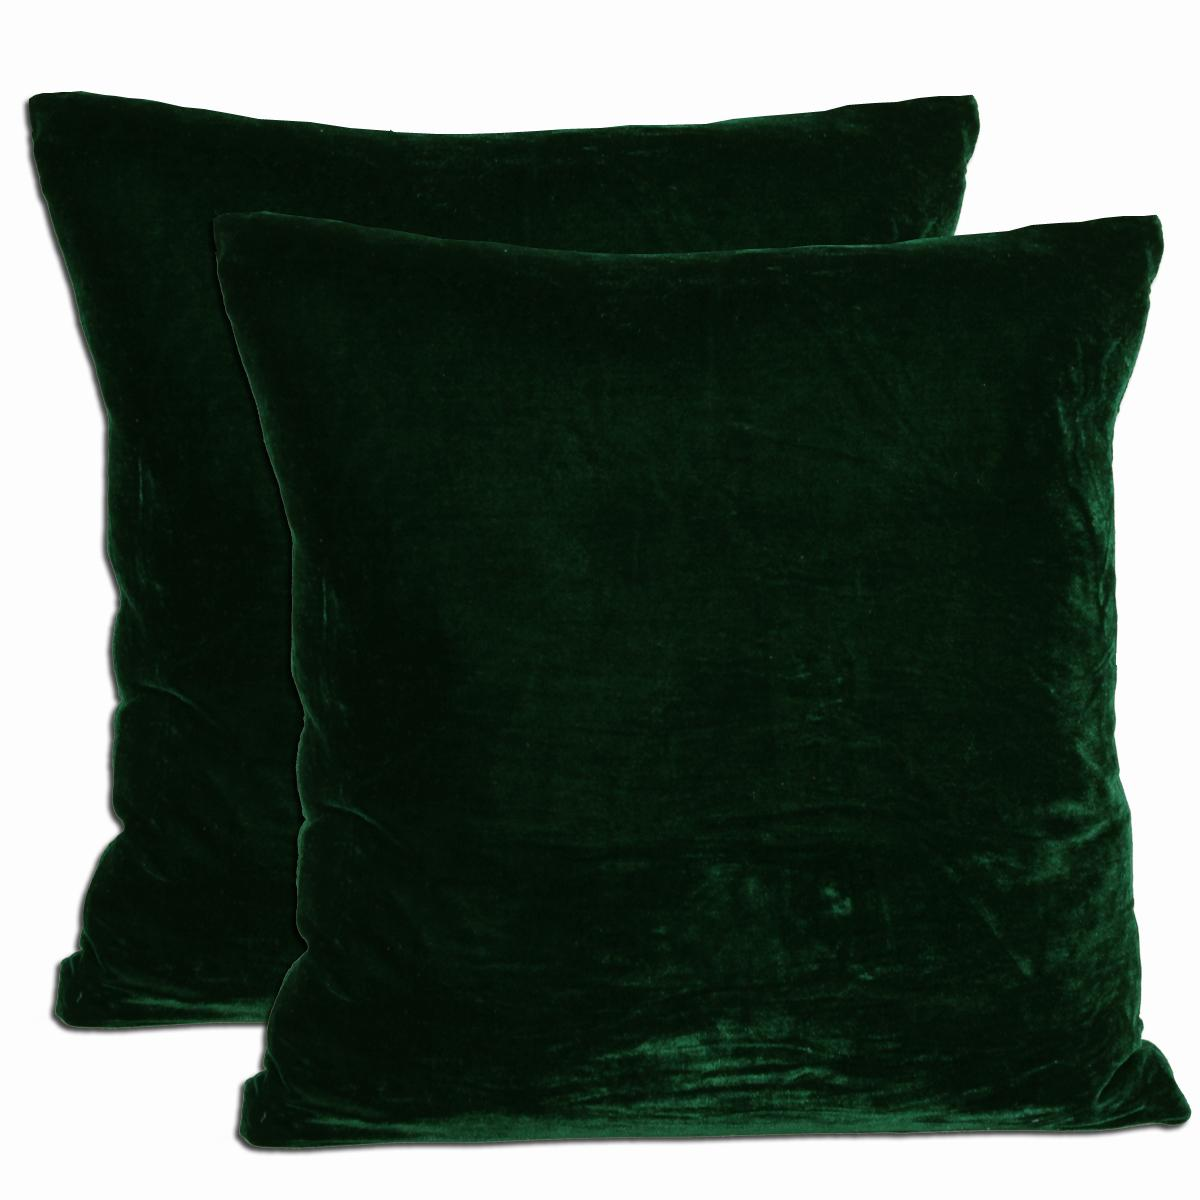 Pleasant Green Velvet Feather And Down Filled Throw Pillows Set Of 2 Ibusinesslaw Wood Chair Design Ideas Ibusinesslaworg